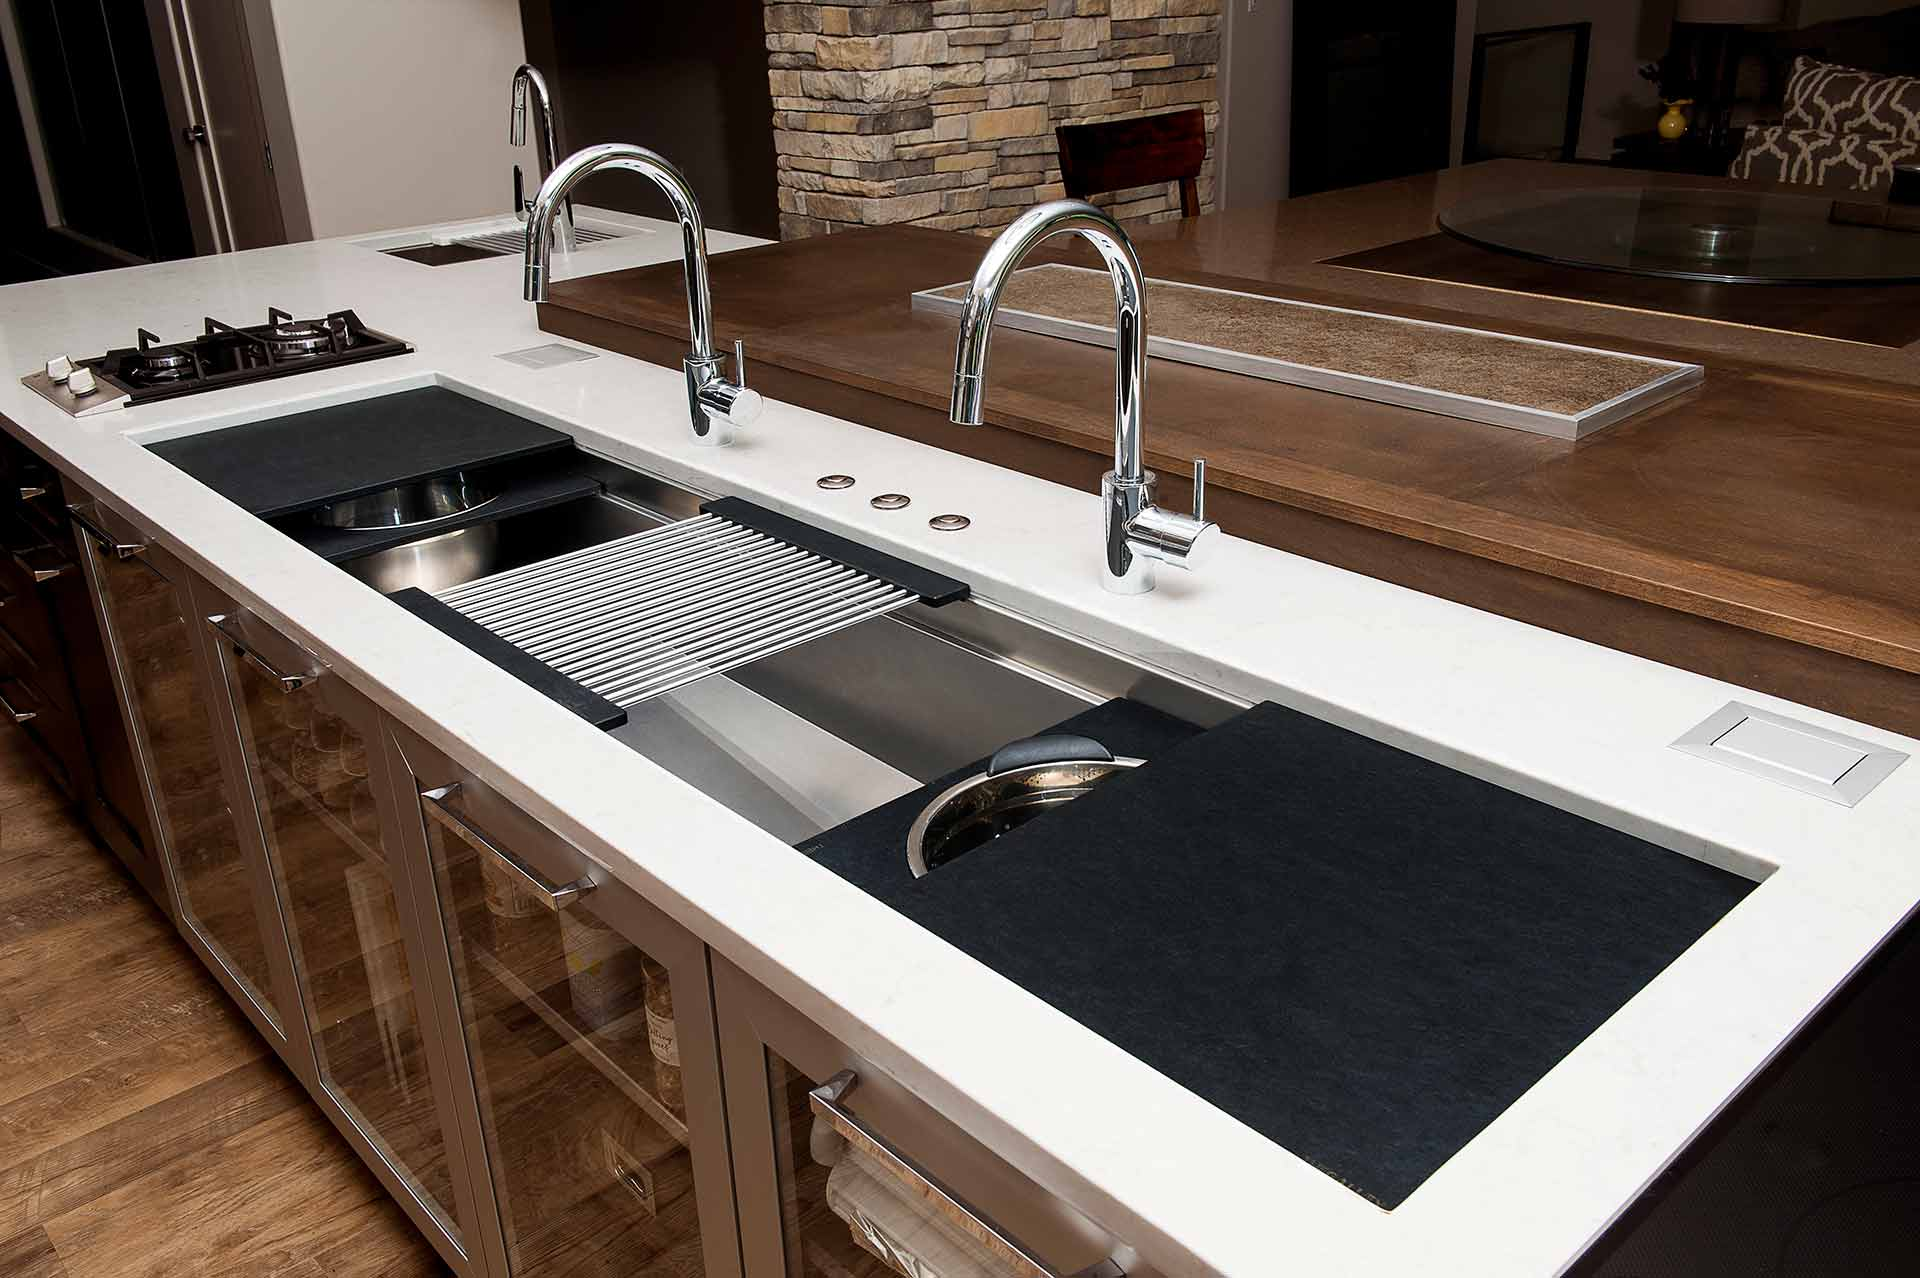 If a new sink is in your future, consider this workstation from The Galley. All stainless with cutting boards, drain racks and colanders that slide to make a perfectly functional and asthetically pleasign work area.